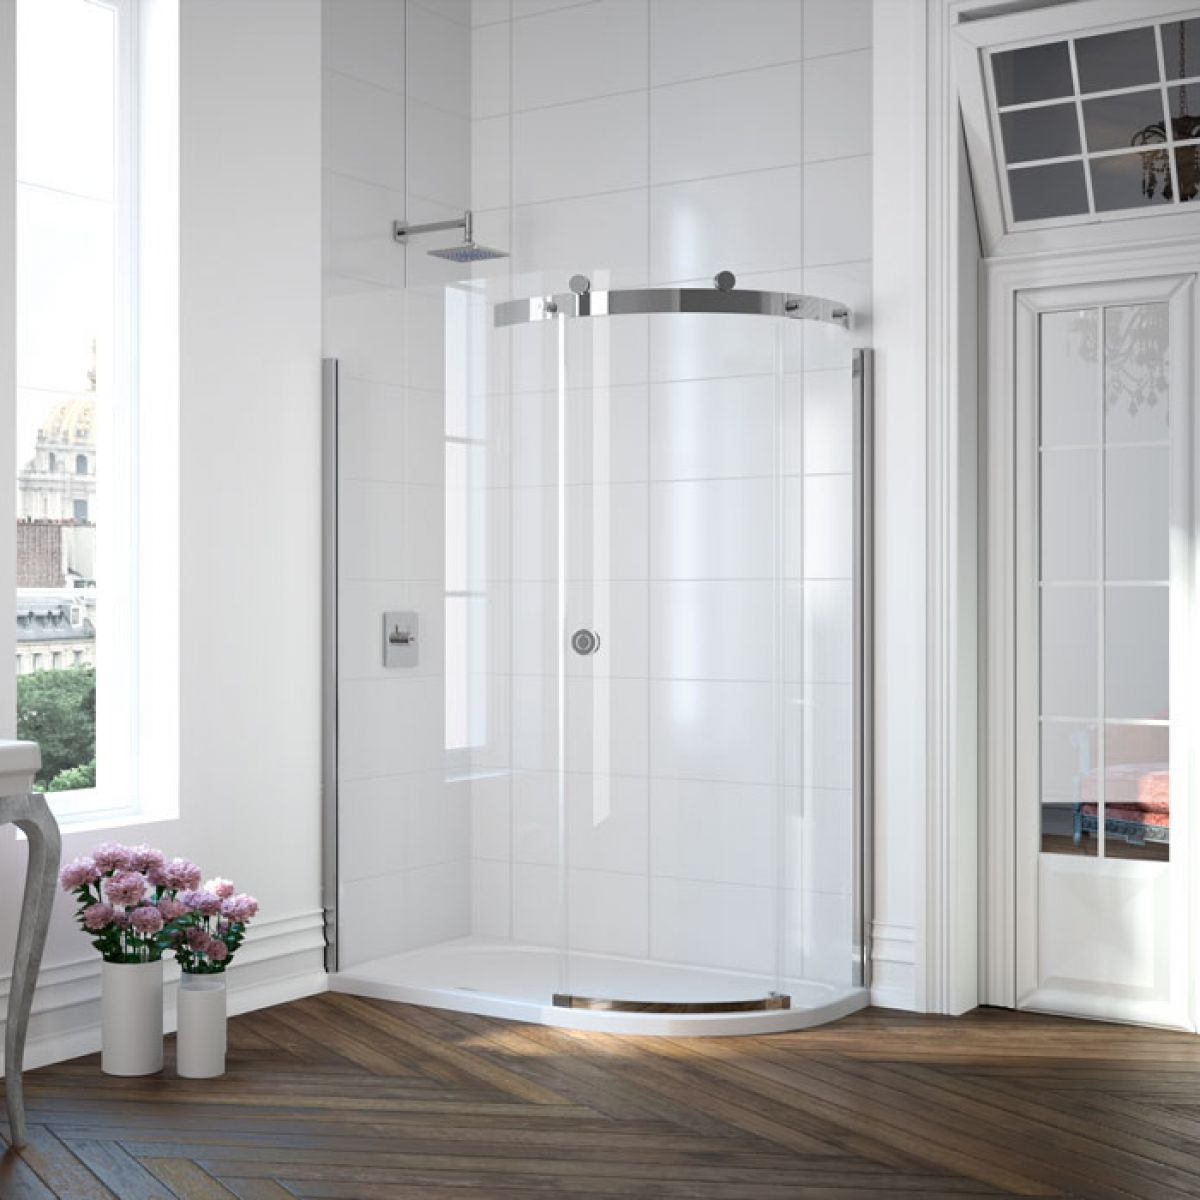 Merlyn Series 10 Offset Quadrant Sliding Shower Enclosure